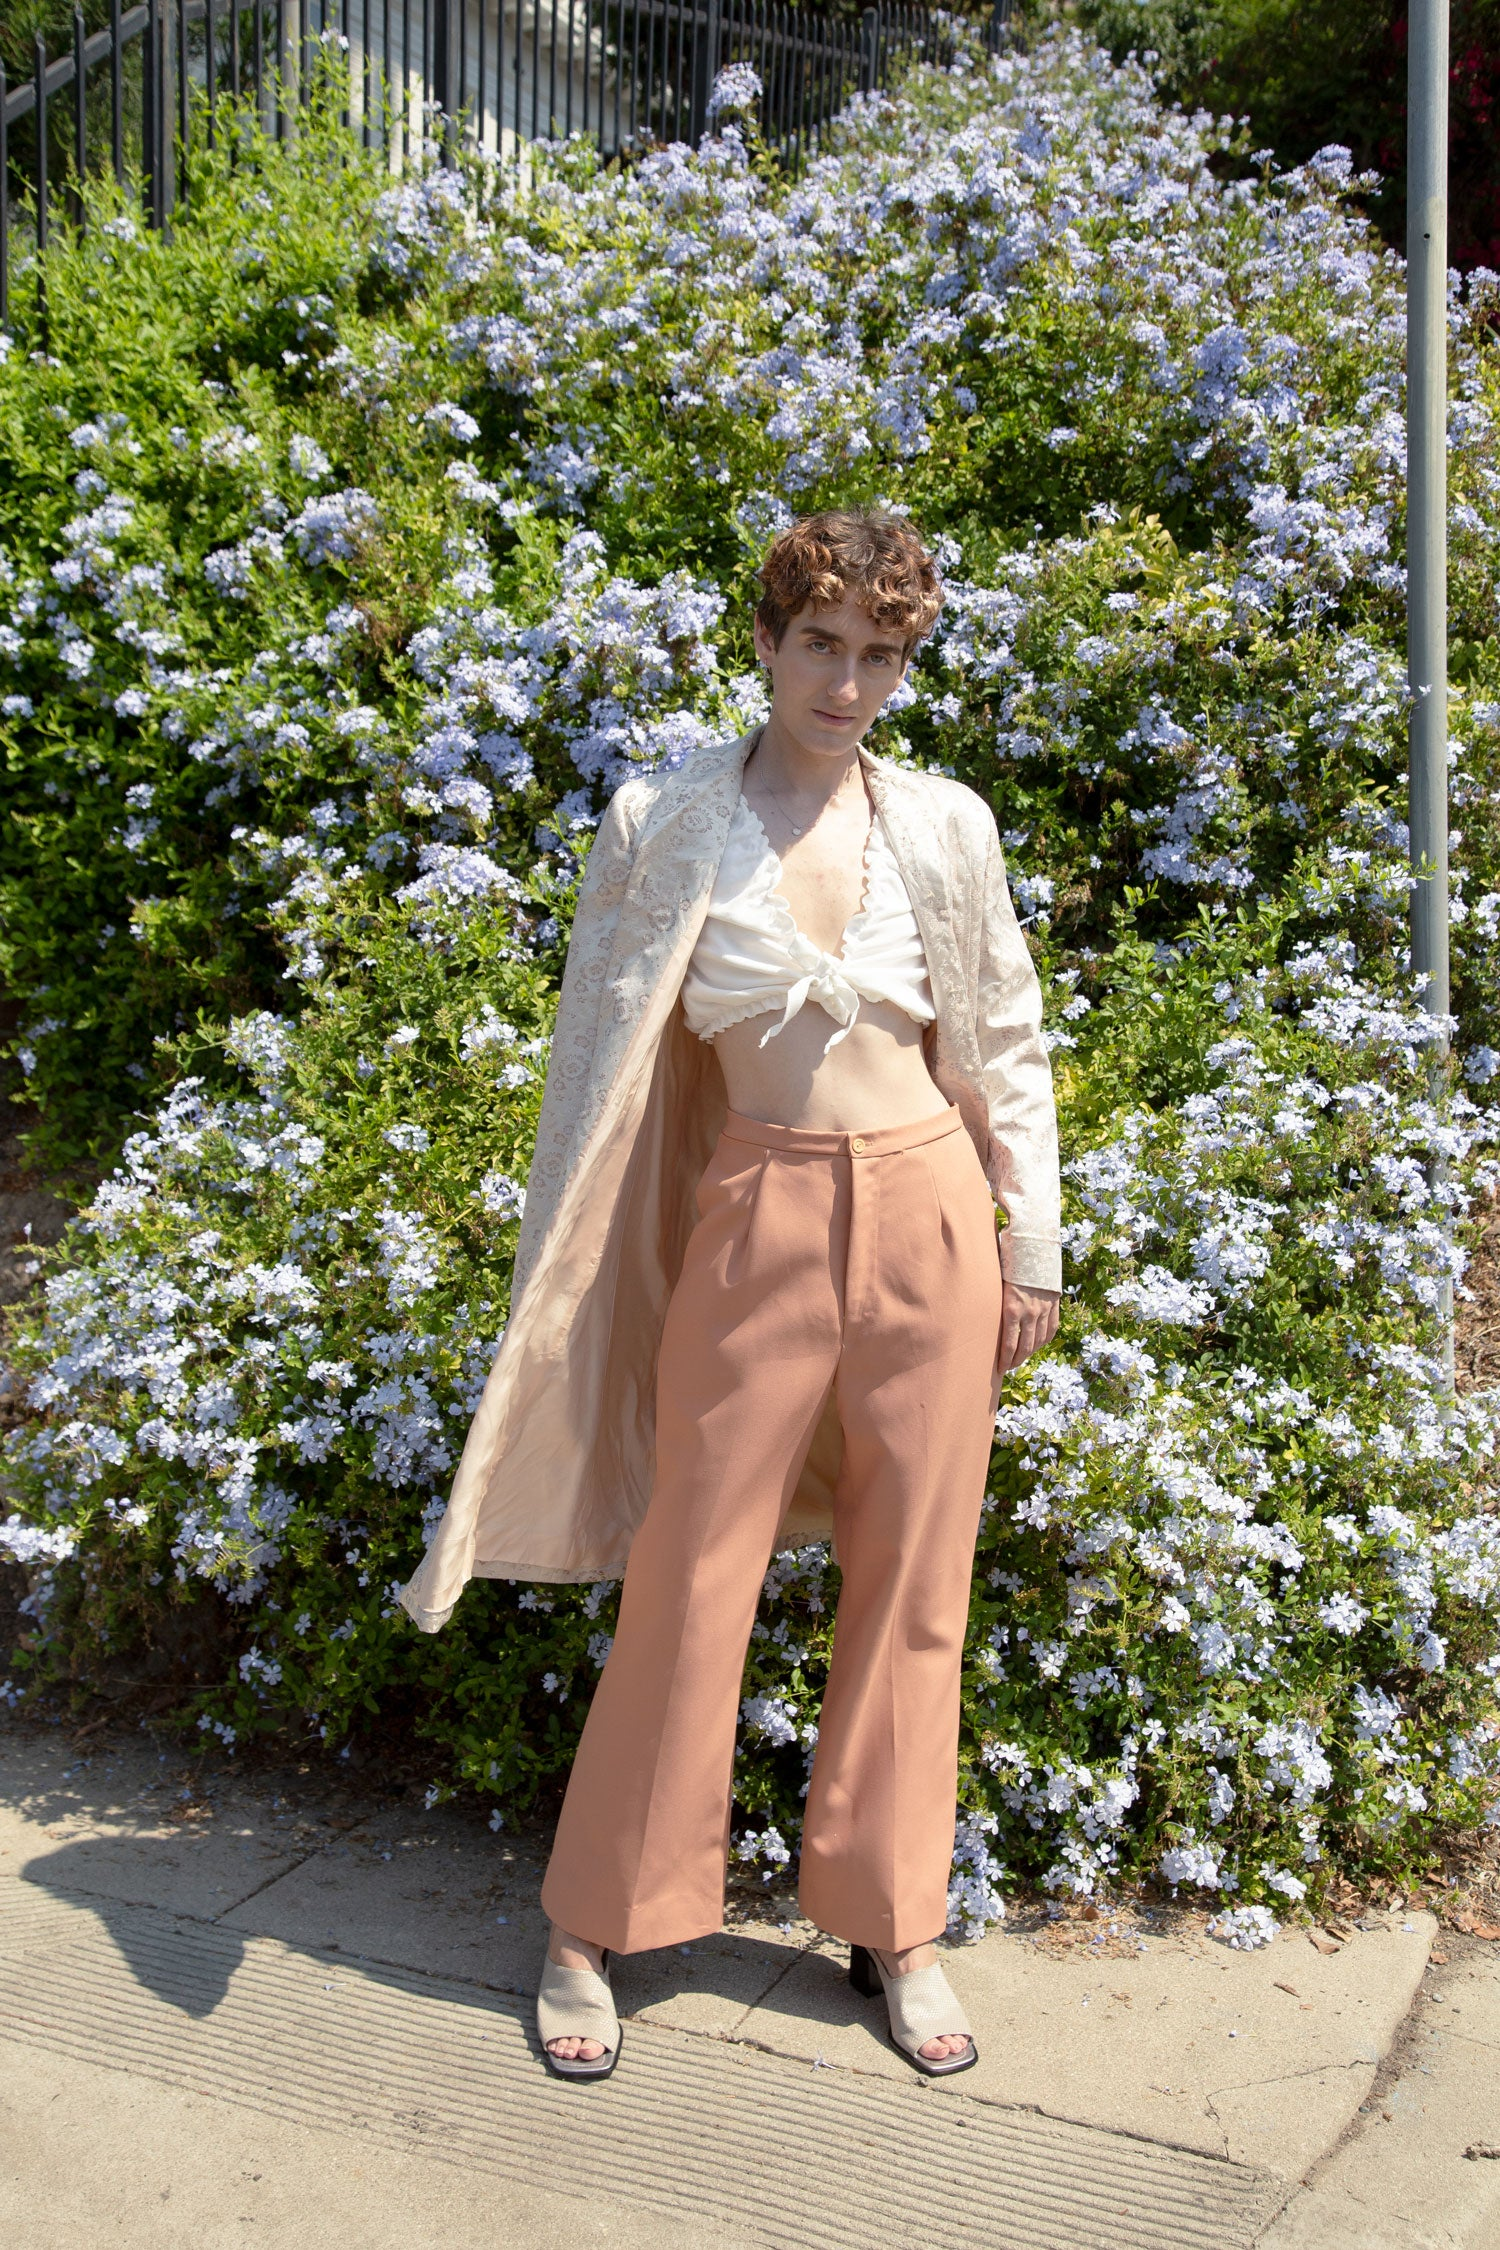 Non binary femme model wearing 90s long jacket, and 70s wide leg pants.  Stands in front of purple flower bush.